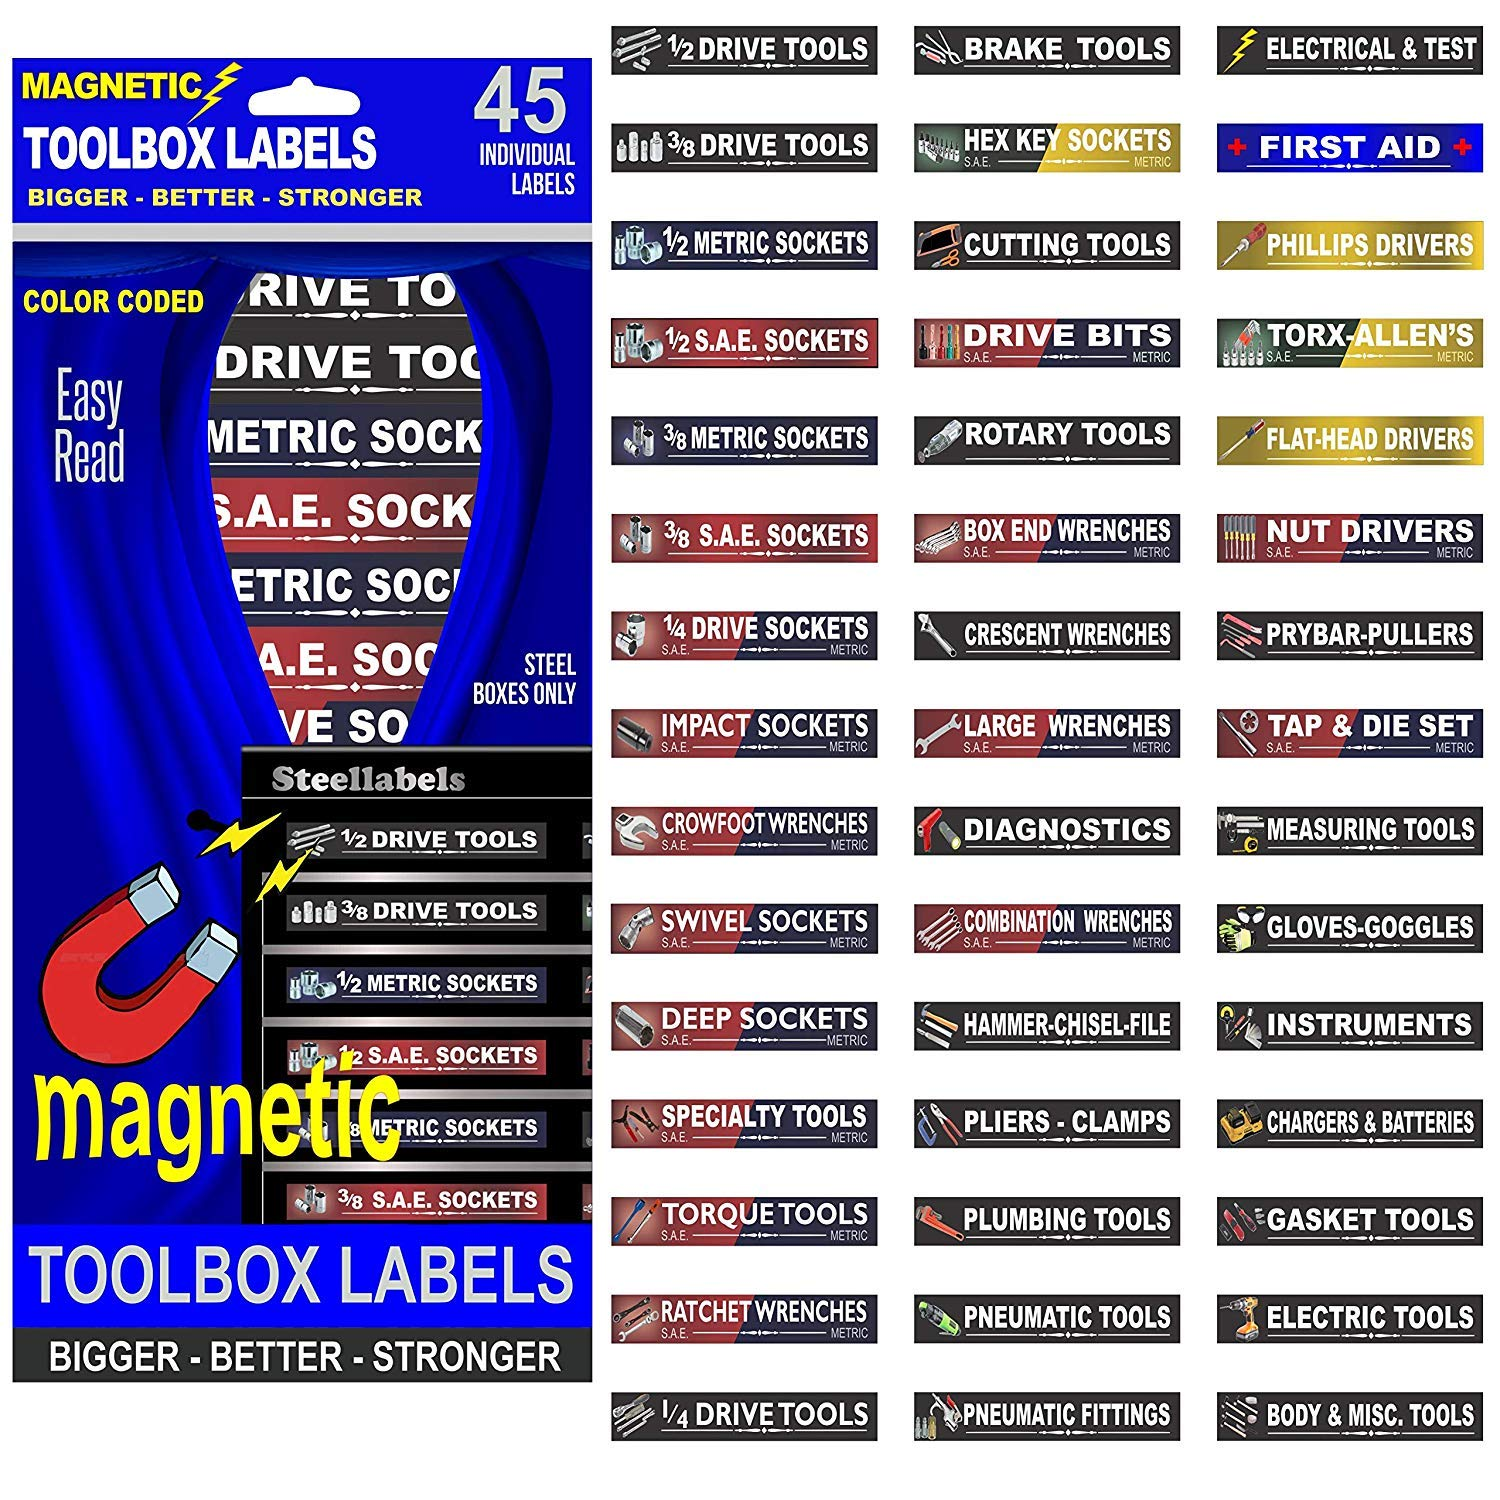 """Ultimate Magnetic Tool Box Organizer Labels - Blue Edition organize boxes, drawers & cabinets """"Quick & Easy"""", fits all brands of 'Steel' tool chest Craftsman, Snap-on, Mac, Matco & Cornwell"""